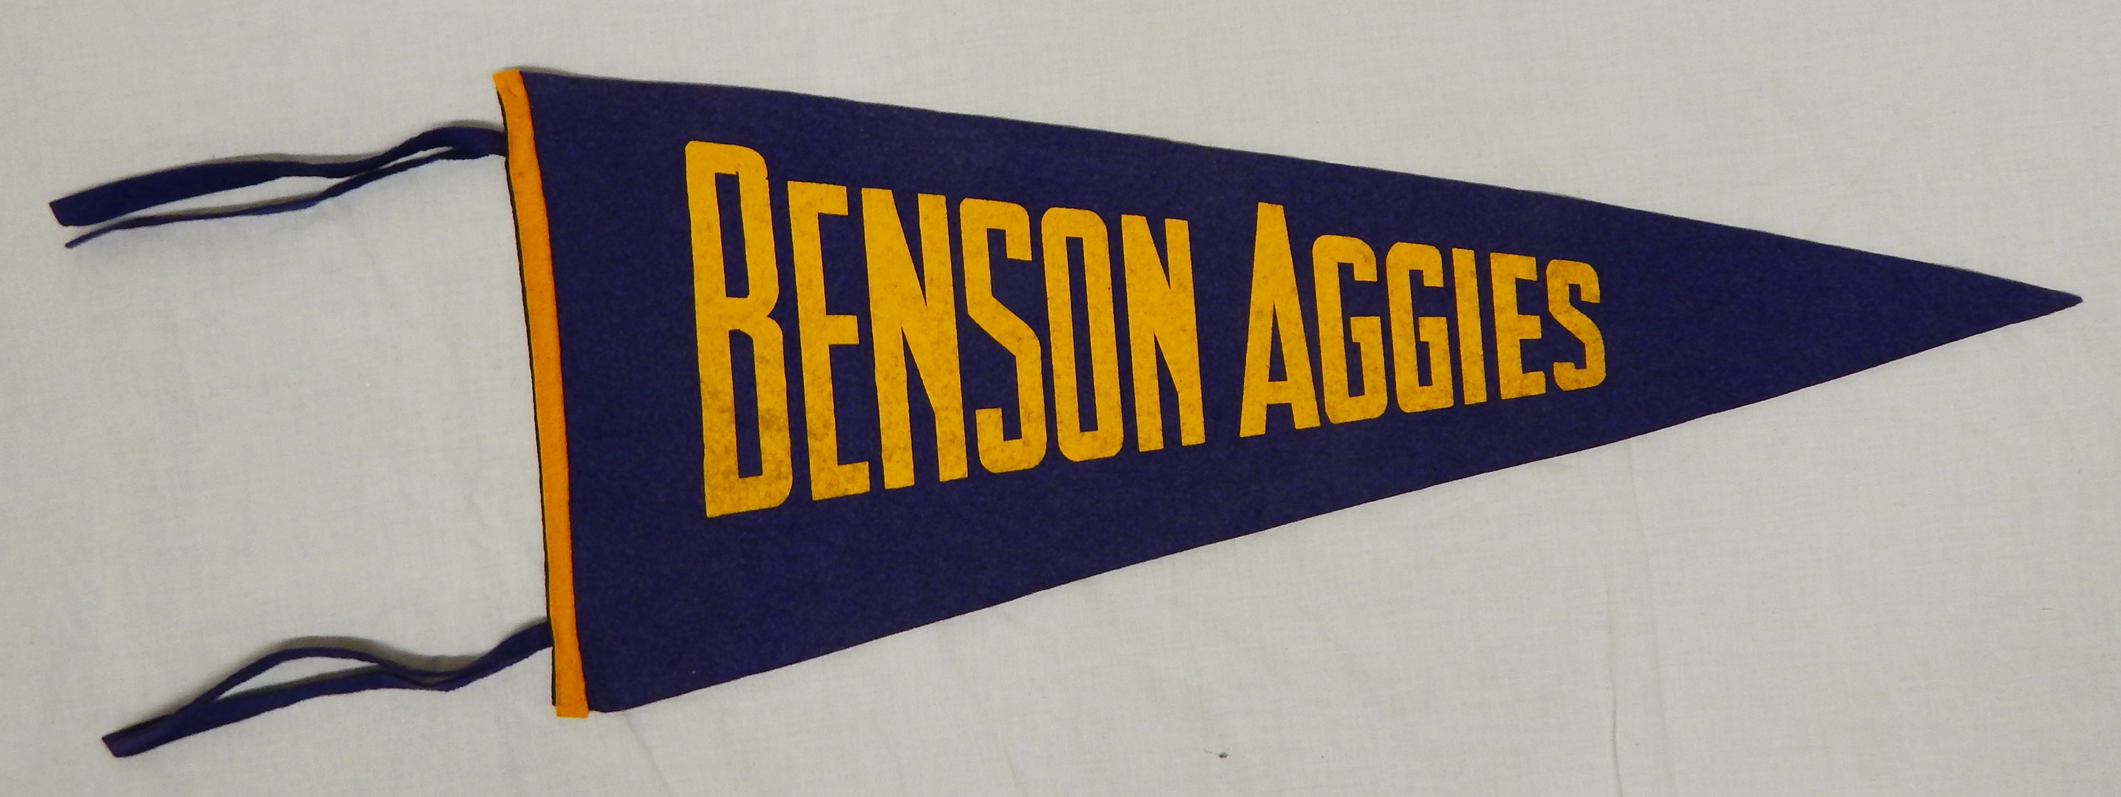 Benson county ag and training school